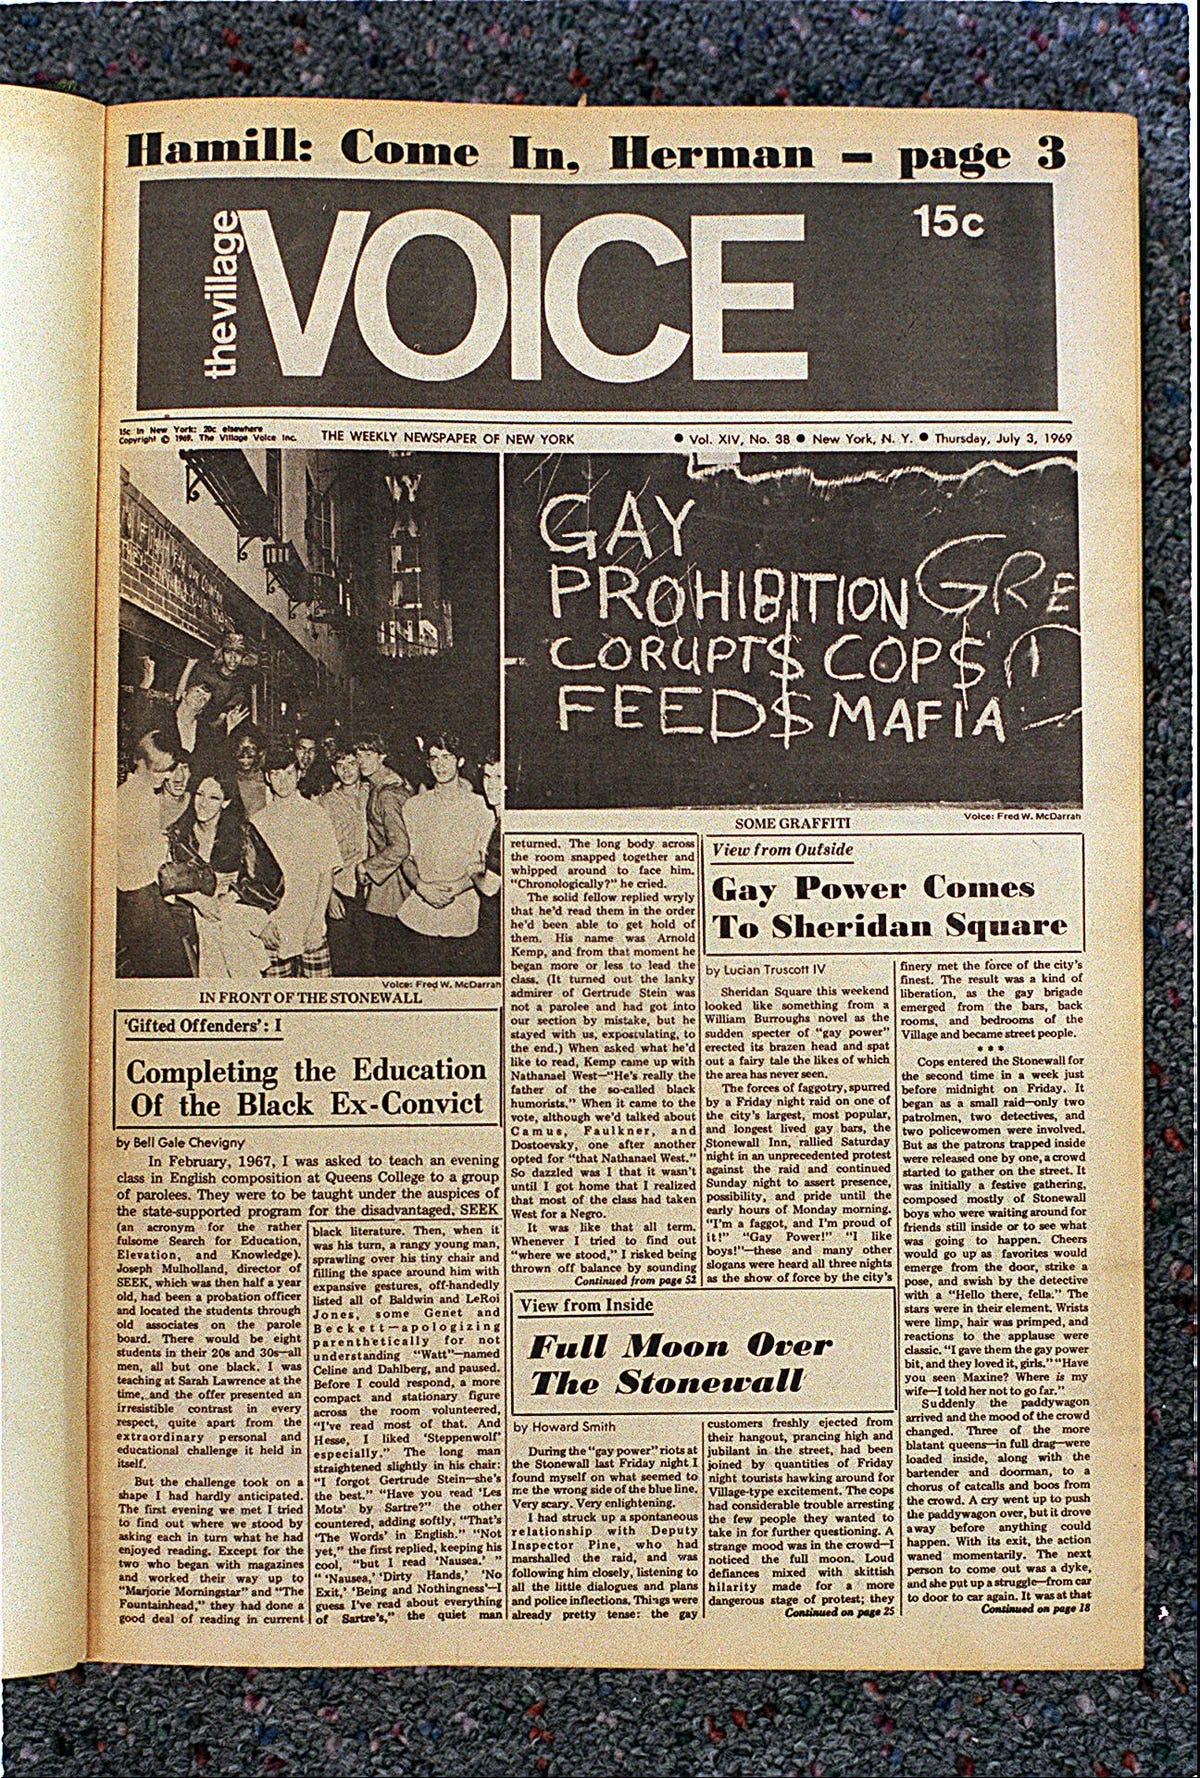 Why is LGBT Pride Month in June?